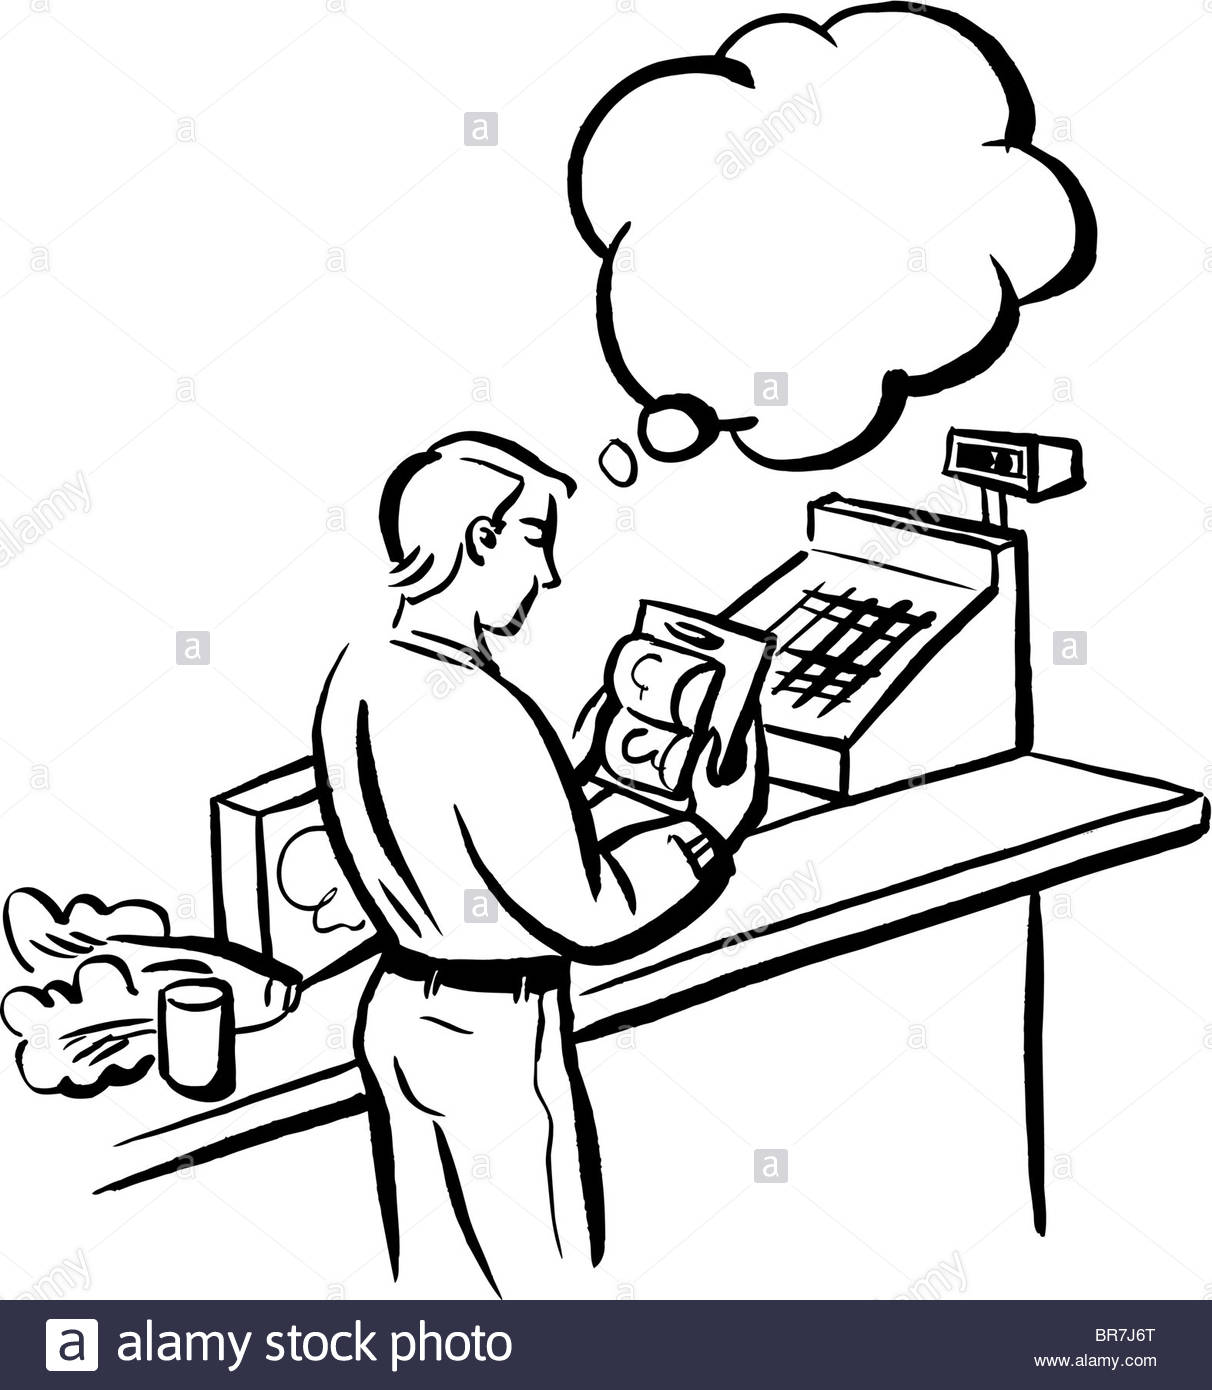 Drawing at getdrawings com. Cashier clipart black and white